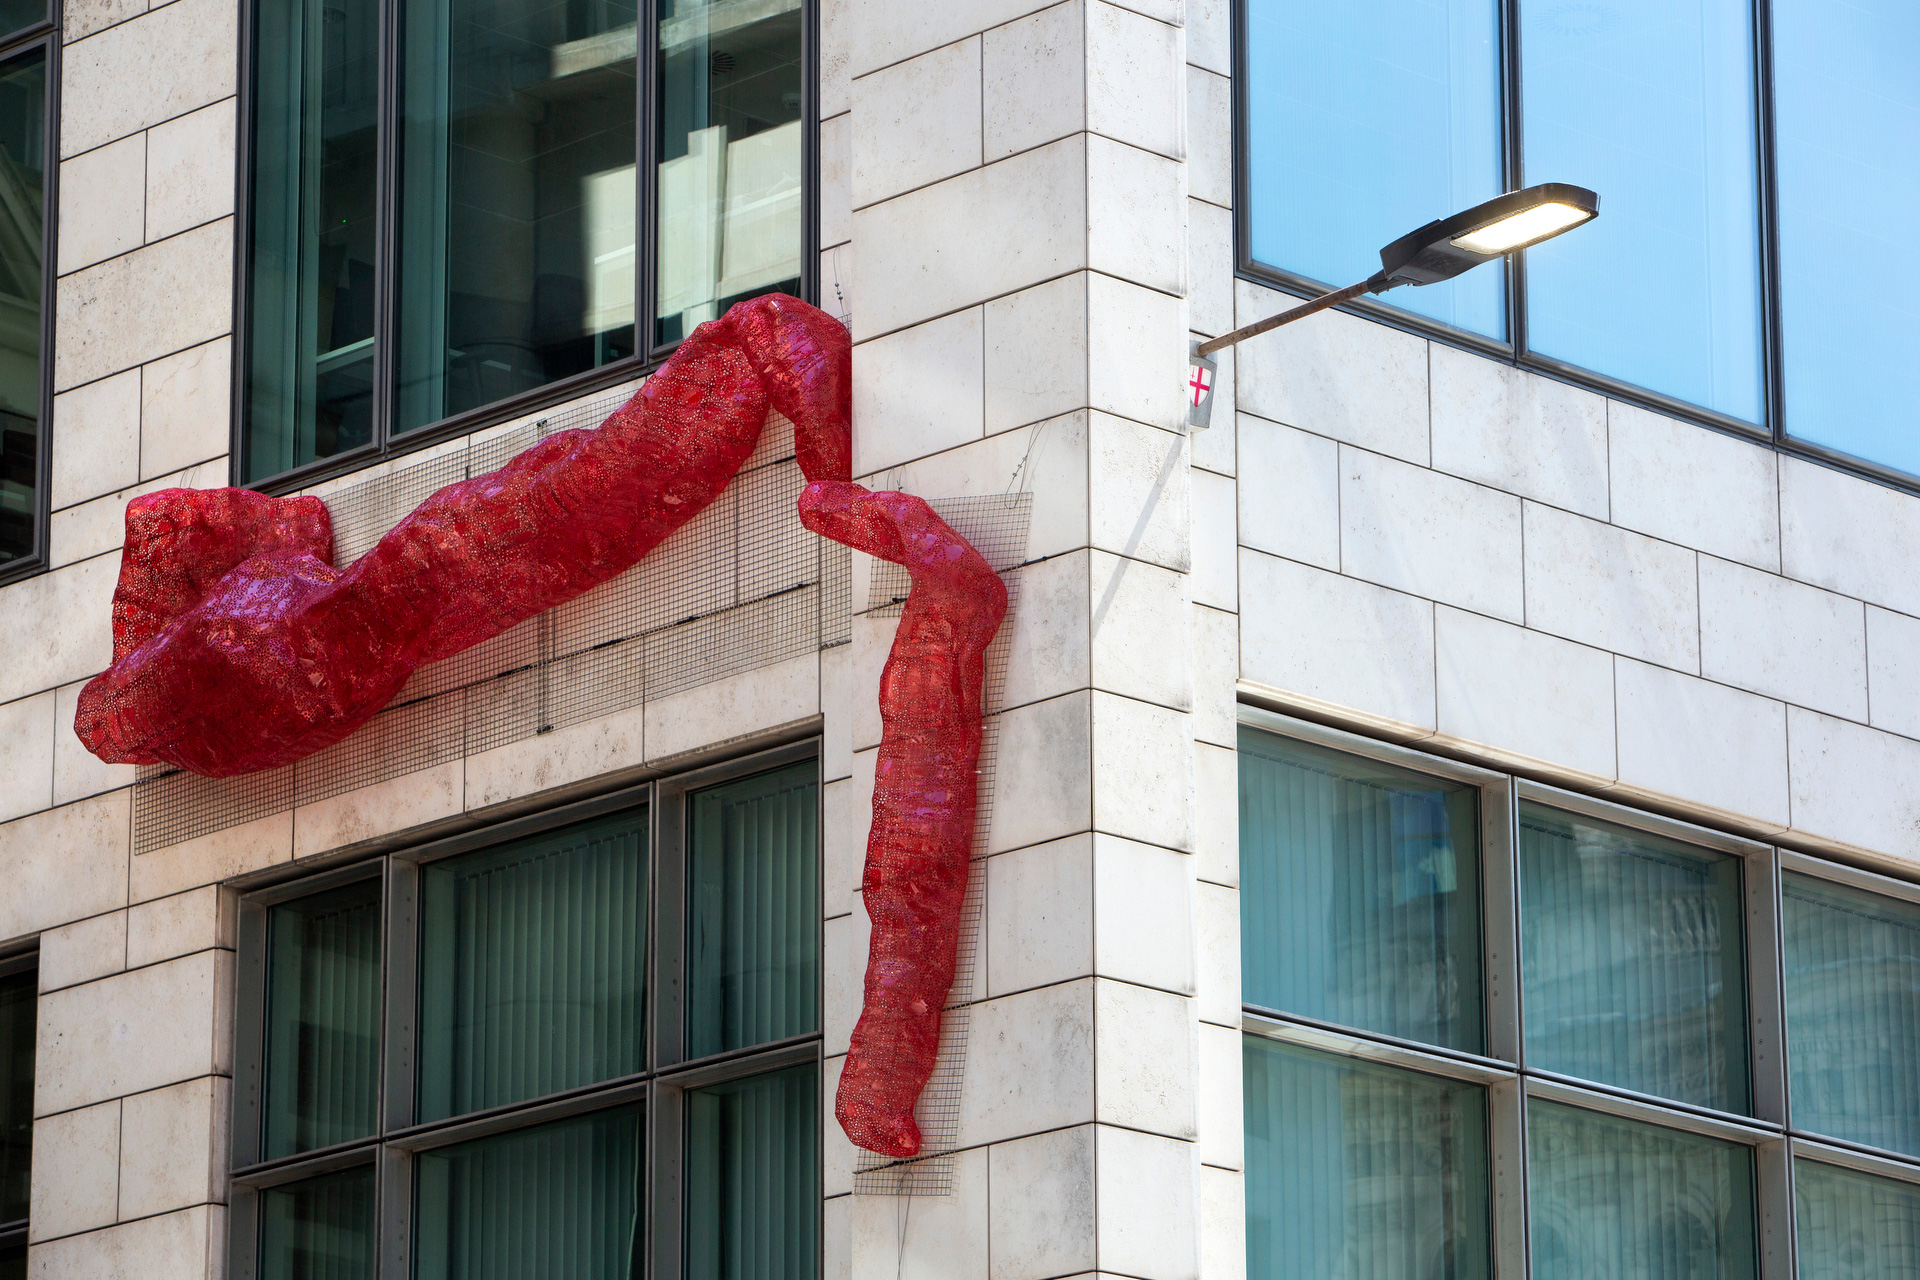 Untitled (Module 4), 2021, The Sculpture in the City, 70 Gracechurch St, London, 2021, courtesy Irene Laub Gallery and l'étrangére